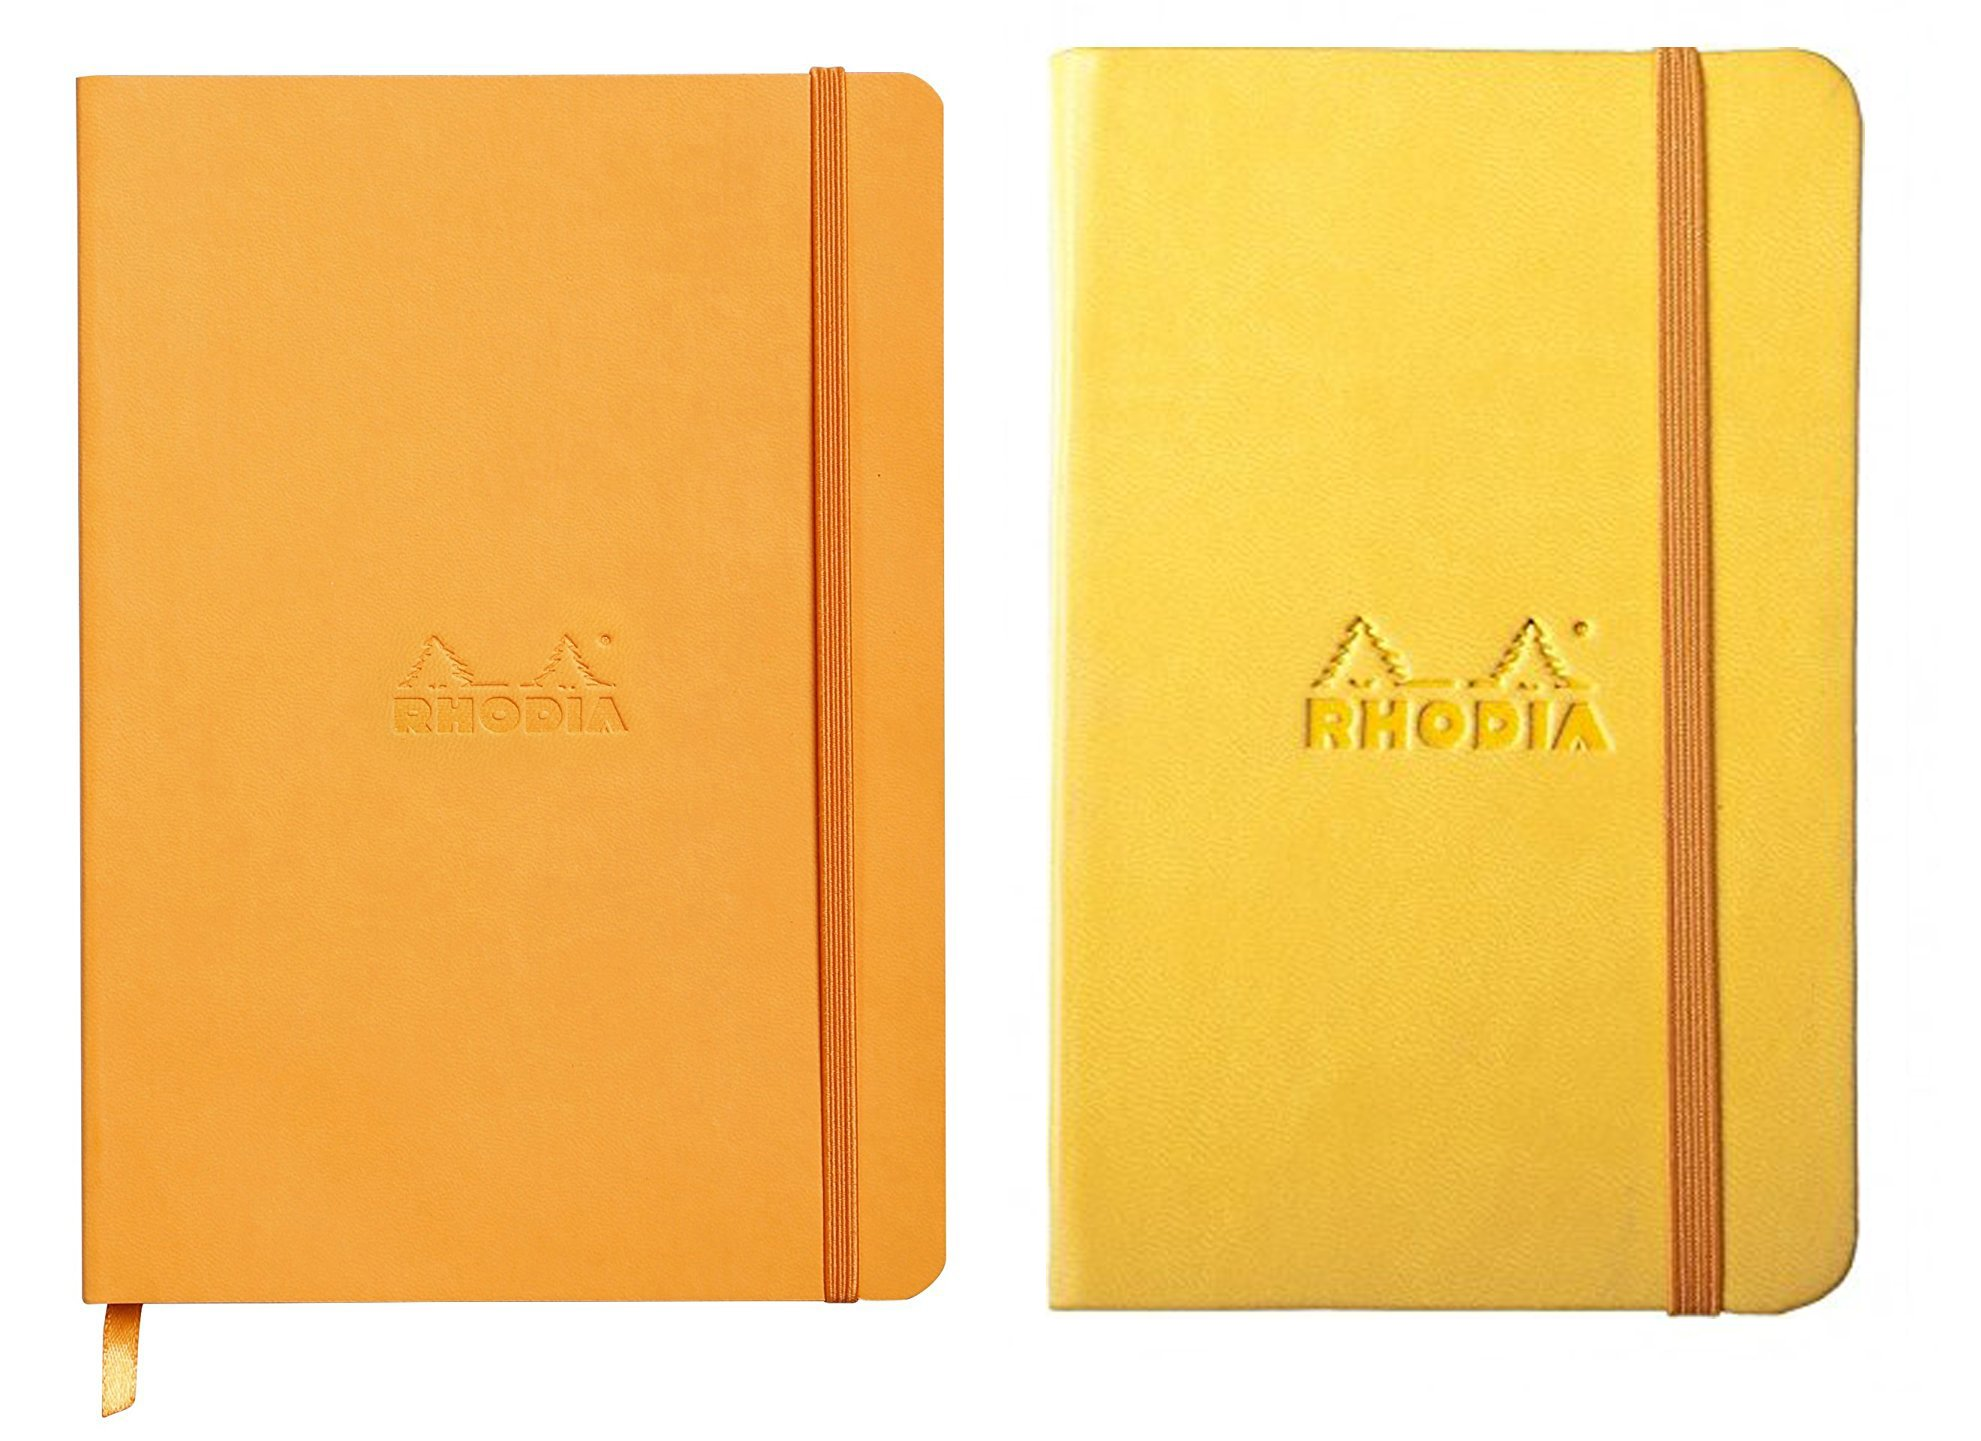 Rhodia Pack of 2 Rhodiarama Lined Soft Cover Notebooks, 5.5''x8.5'', One Daffodil and One Orange by Rhodia